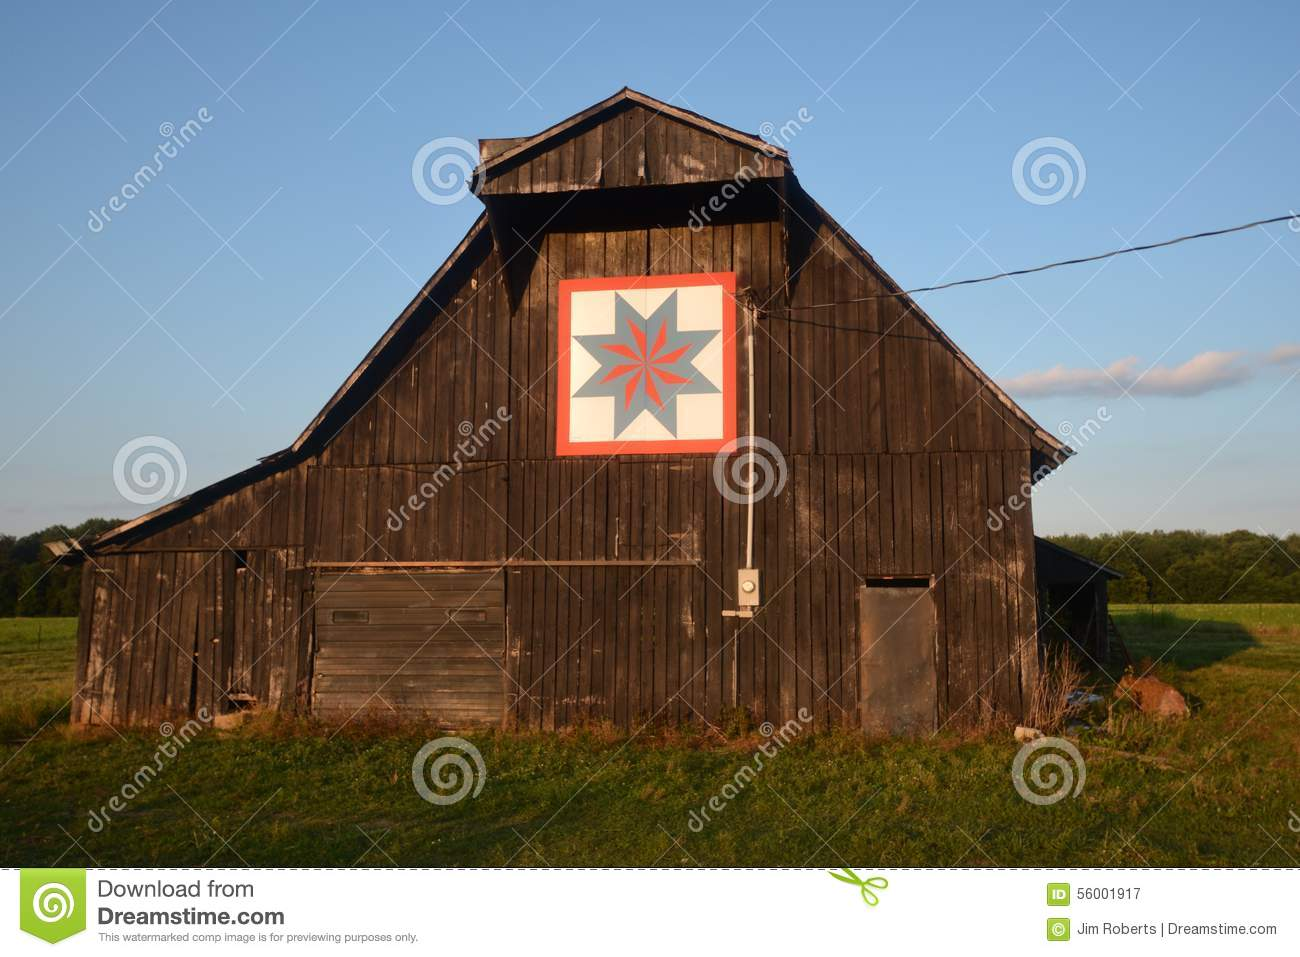 Quilt Pattern on Tobacco Barn